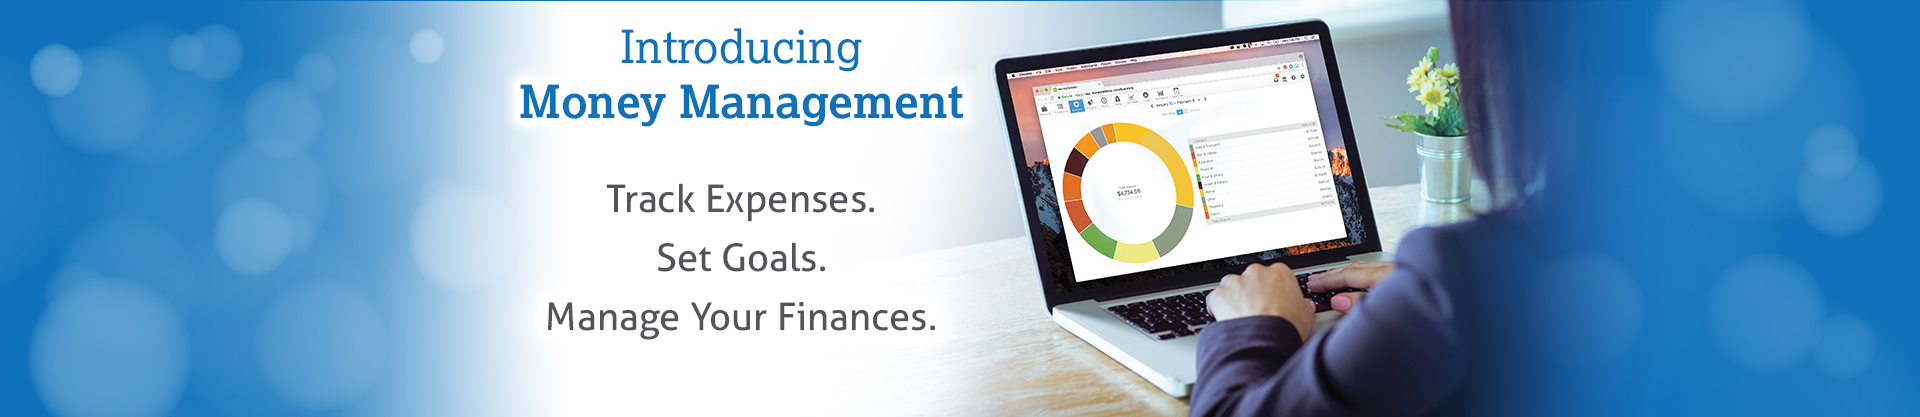 Introducing Money Management. Track expenses. Set goals. Manage your finances.